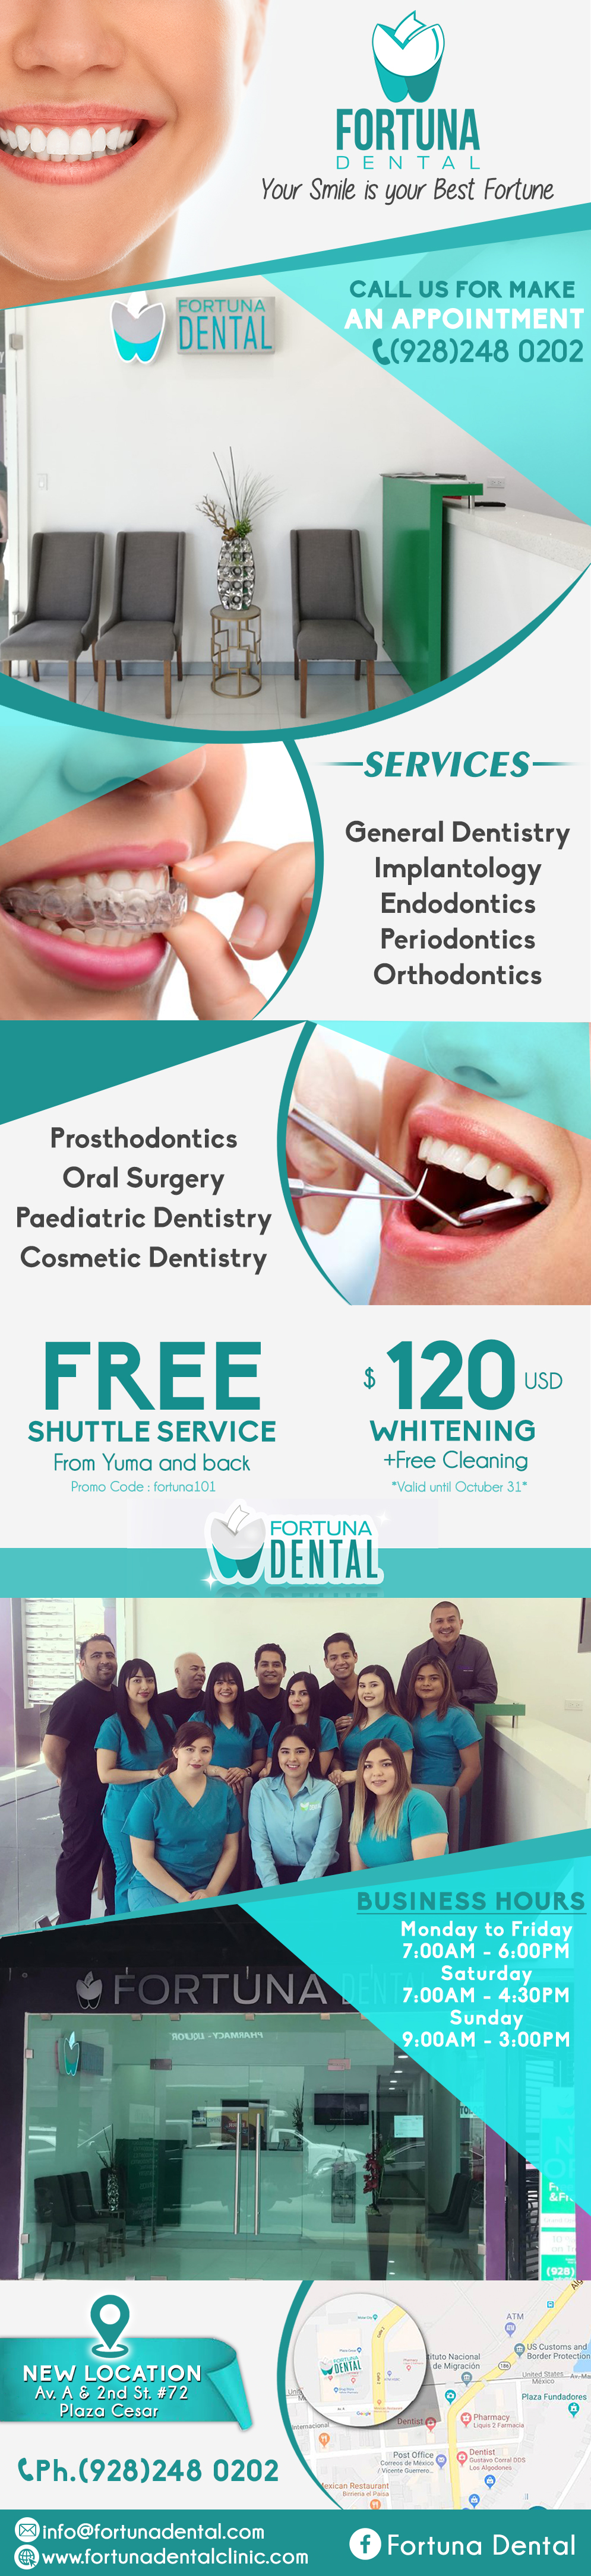 FORTUNA DENTAL in Algodones  in Algodones  Fortuna Dental, We count with general dentist that specialize on: Pediatric Dentistry, Implantology, Maxillary Surgery, Othodontics, Periodontics, Endodontics.     Fortuna Dental, We count with general dentist that specialize on: Pediatric Dentistry, Implantology, Maxillary Surgery, Othodontics, Periodontics, Endodontics.